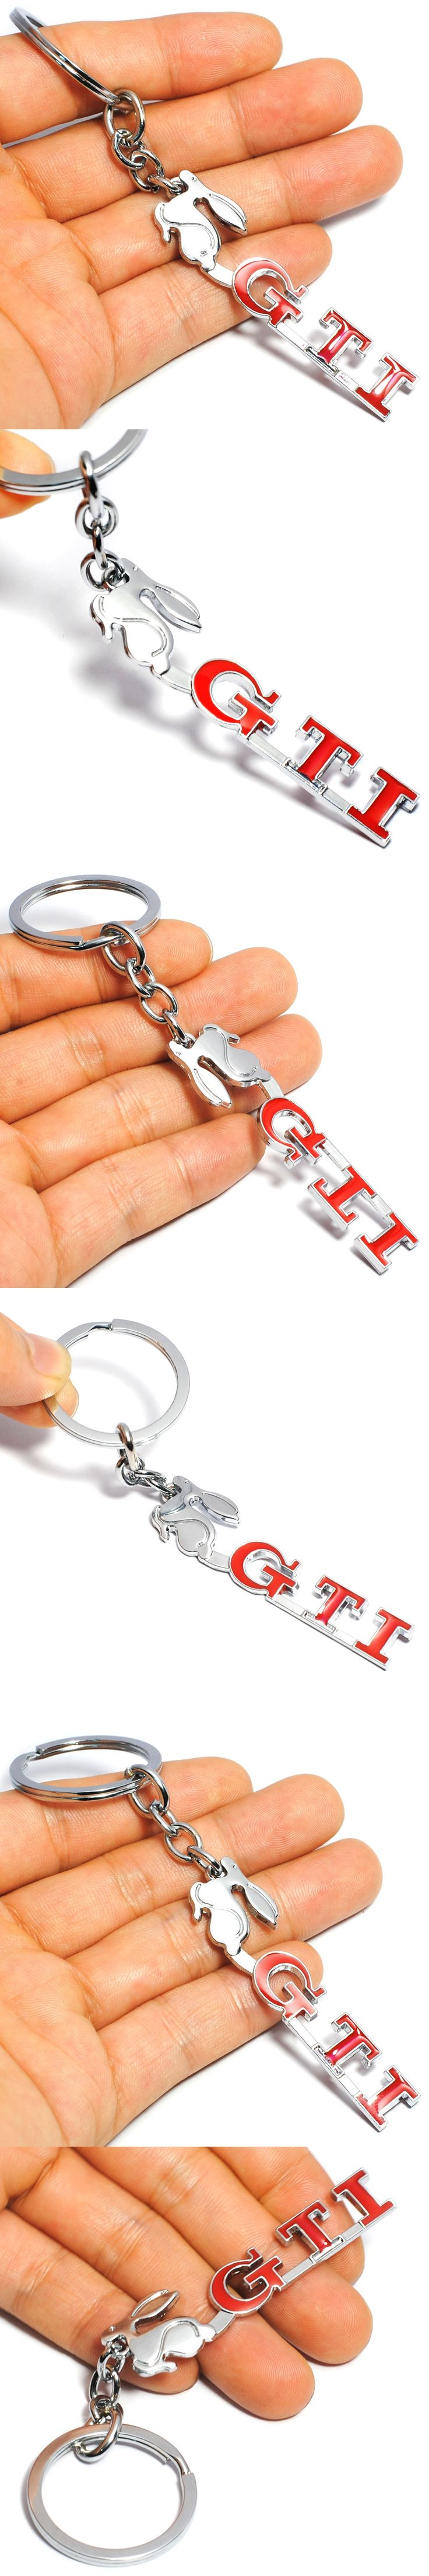 Auto Keyring 3D GTI VW Car Key Ring Chrome Finish Key Chain Fob Ring for Volkswagen Golf 4 5 6 7 Metal GTI Car Styling Keychain